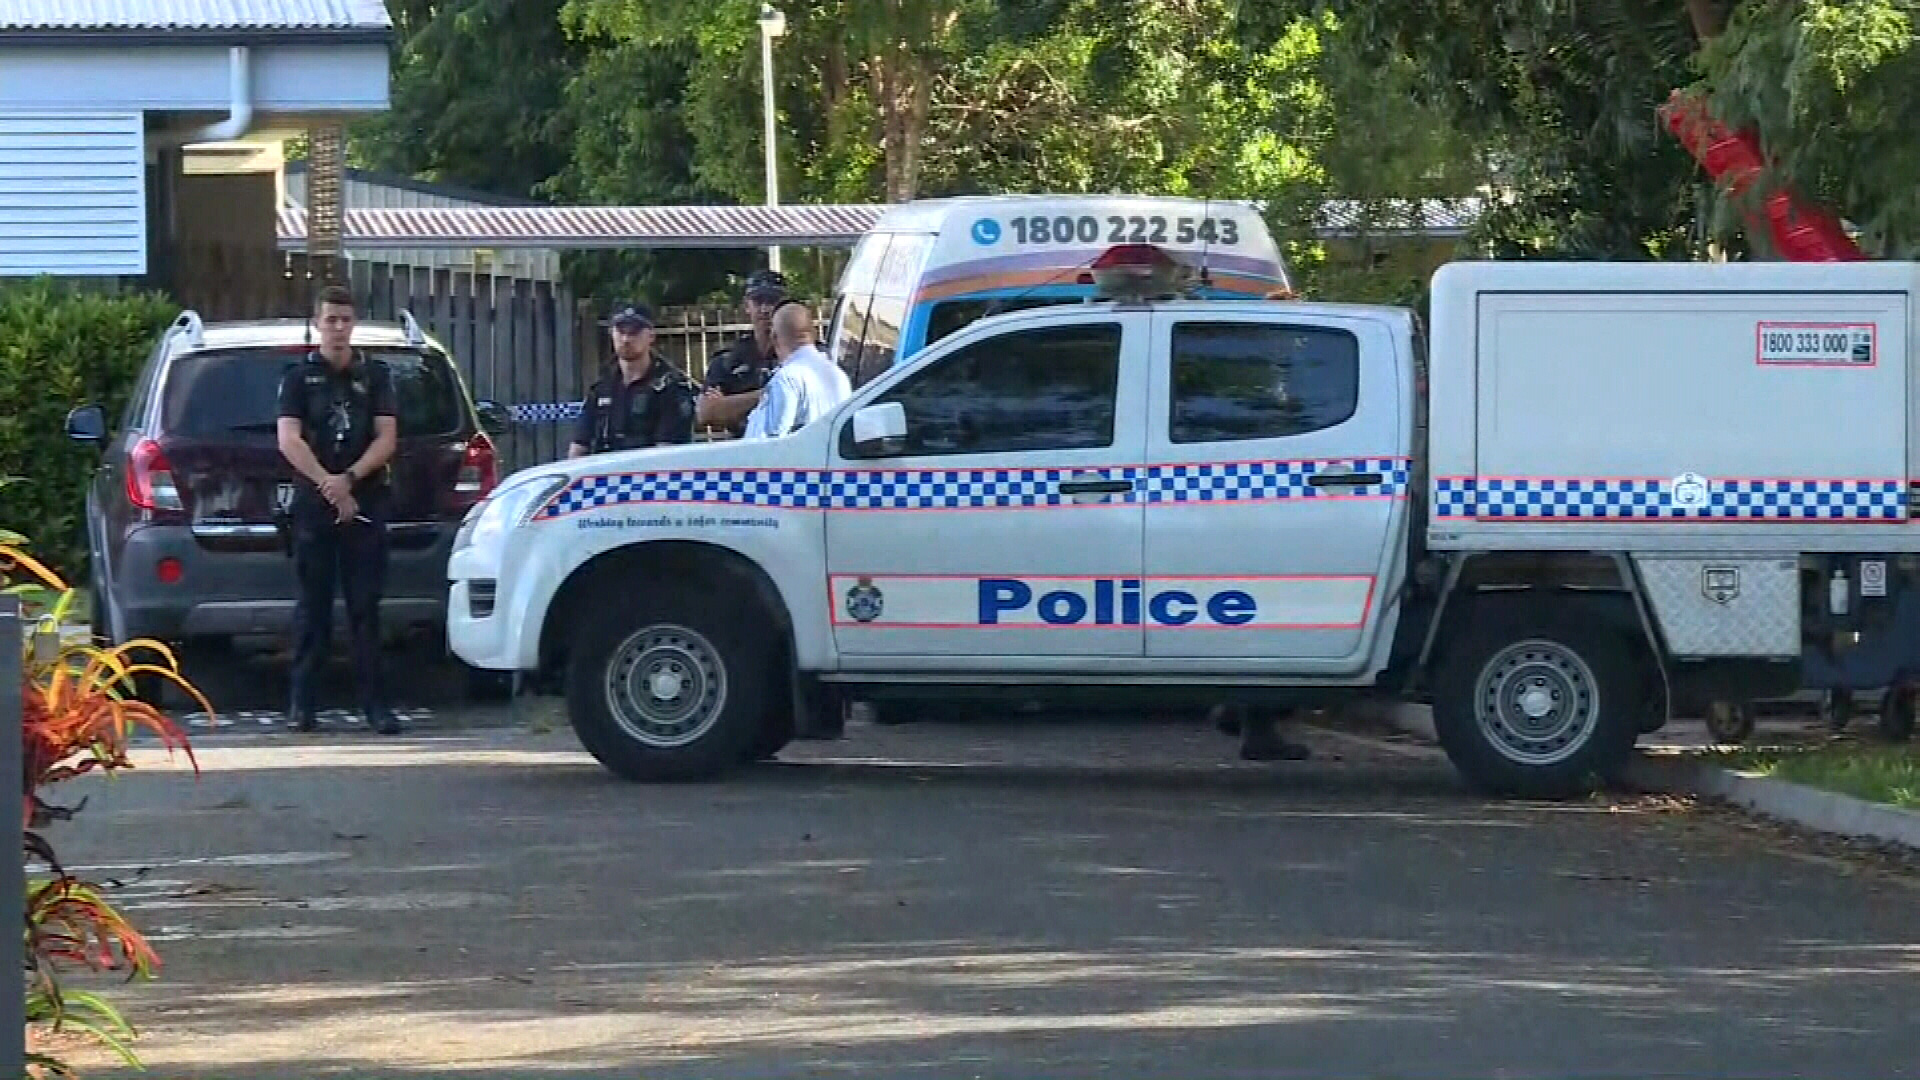 Queensland Police and the Child Protection Investigation Unit are working with a number of agencies to establish how the boy was left to die in the bus.